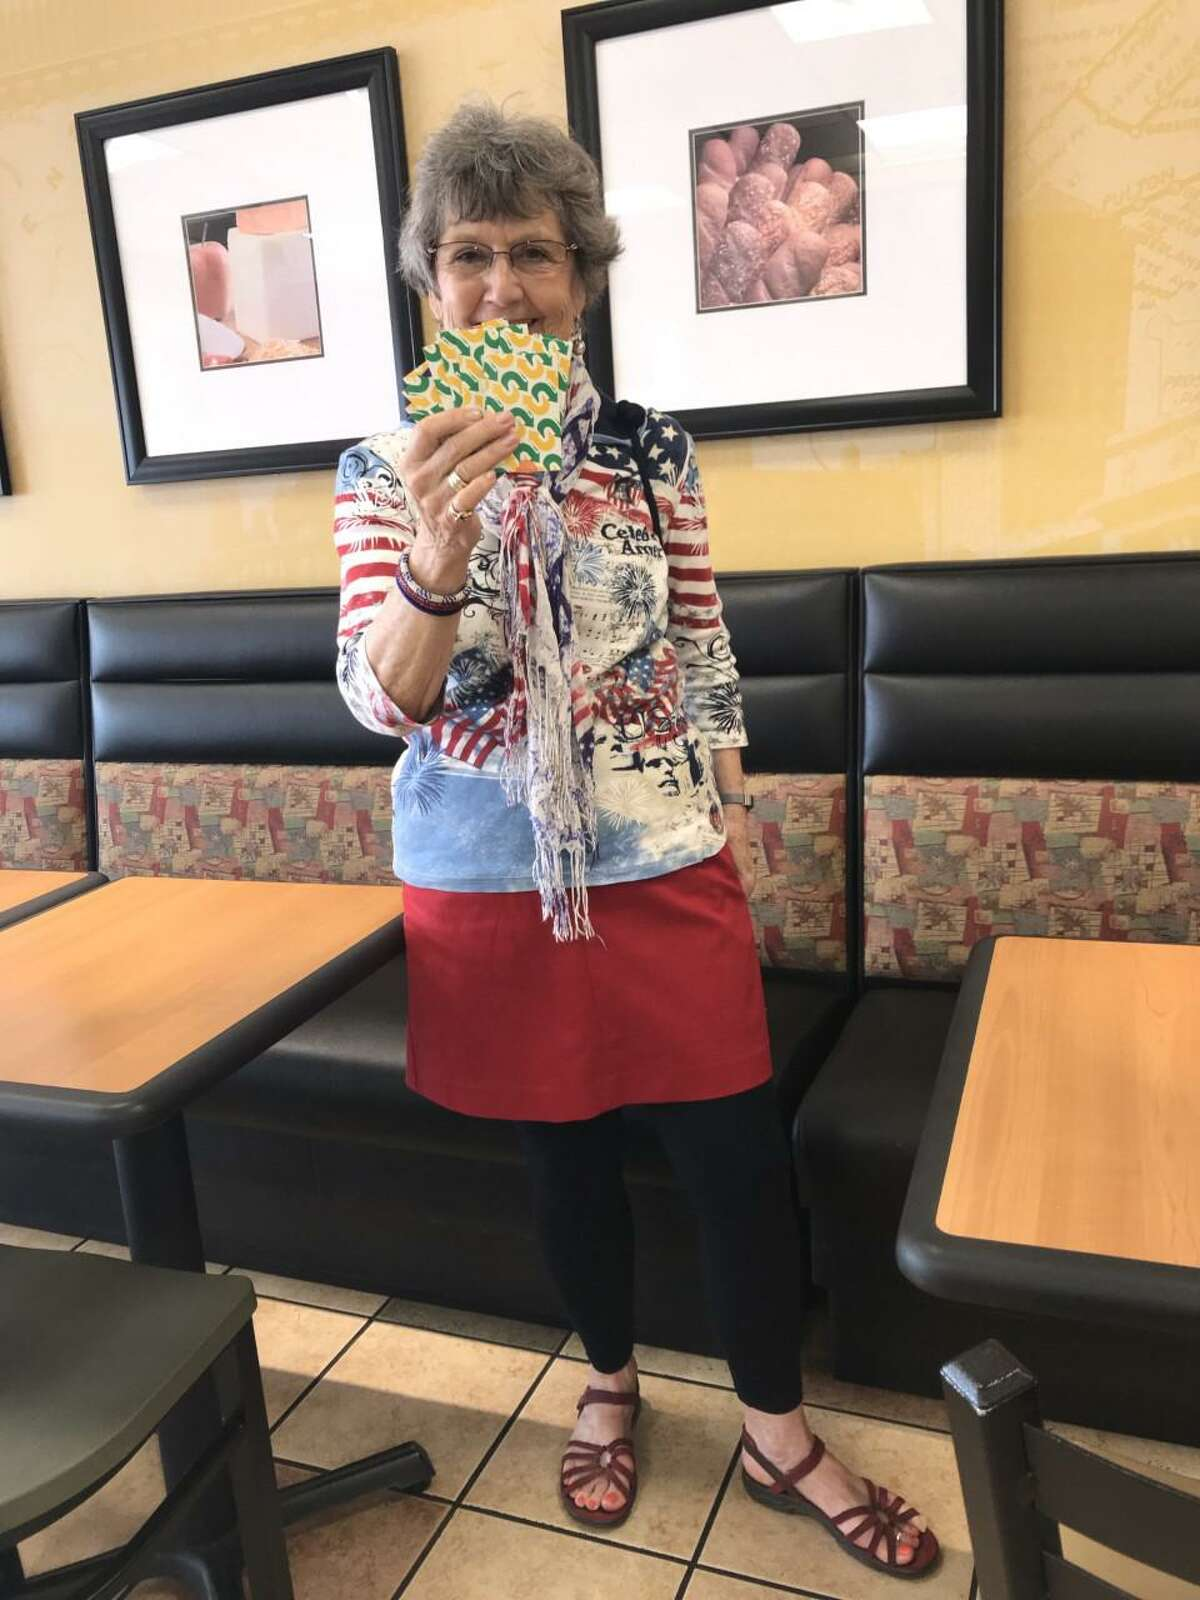 Christine Cummings, photographed in a Subway restaurant with the purchased gift cards during their cross-country trip in May from California to Connecticut.